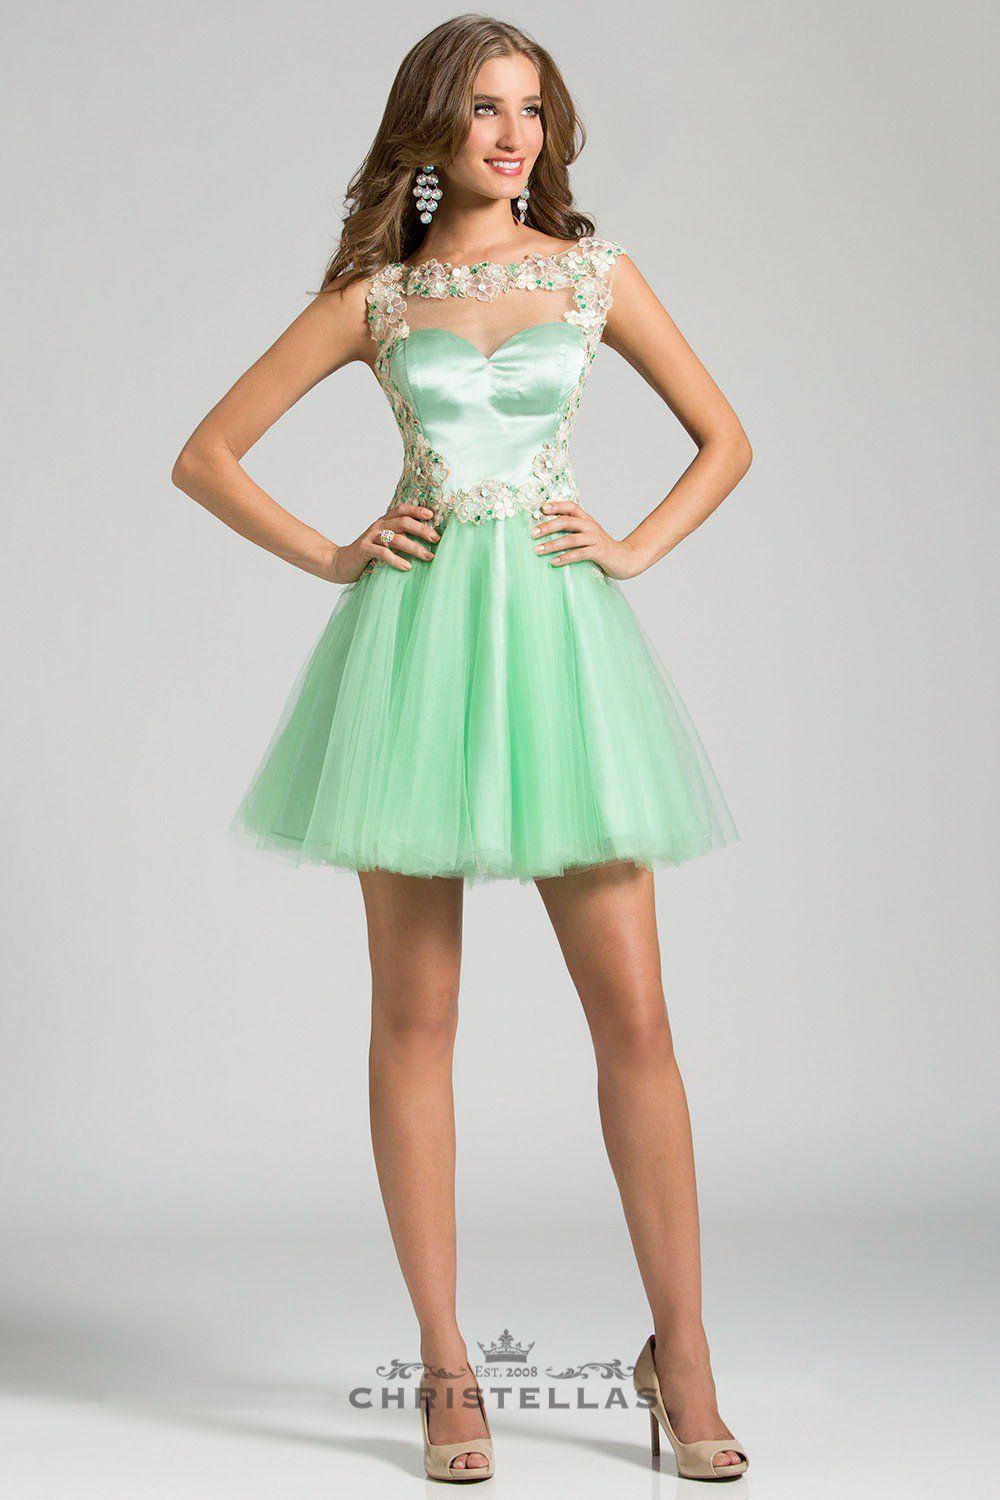 This Enchanted Dress Would Be Perfect For A Garden Party Themed